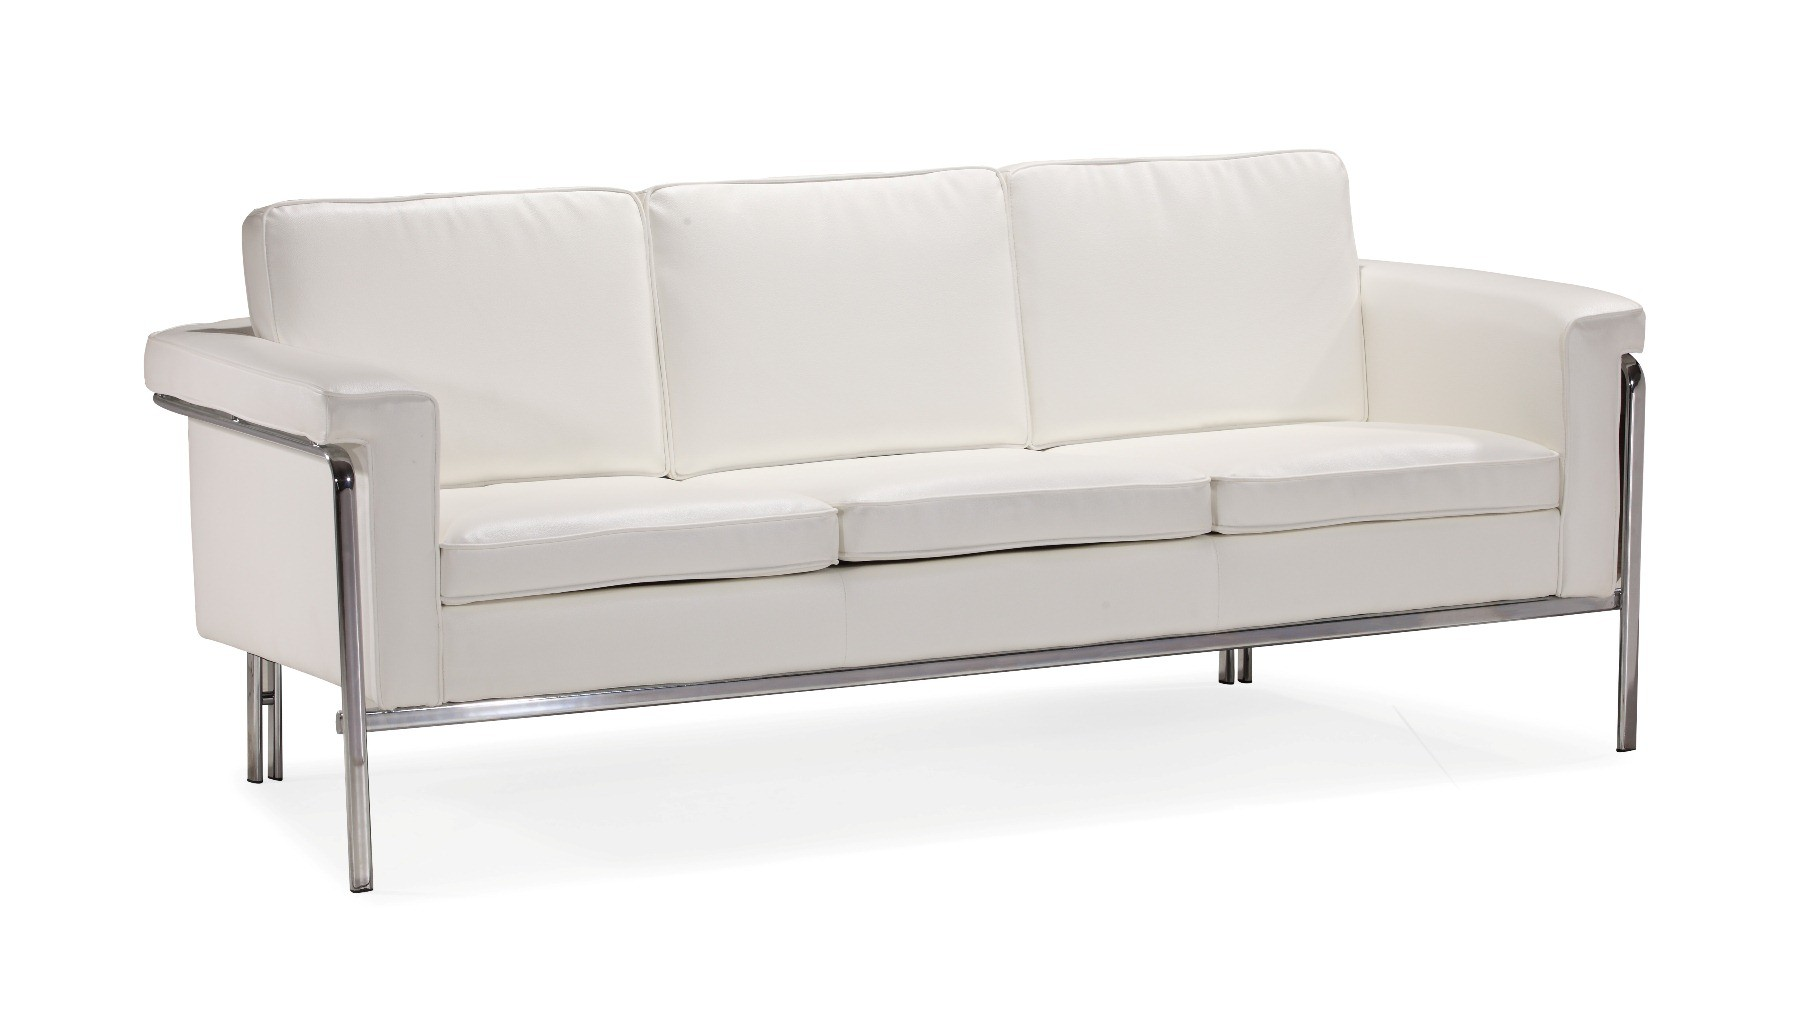 White or black leather contemporary sofa with chrome legs for Designer furniture sofa